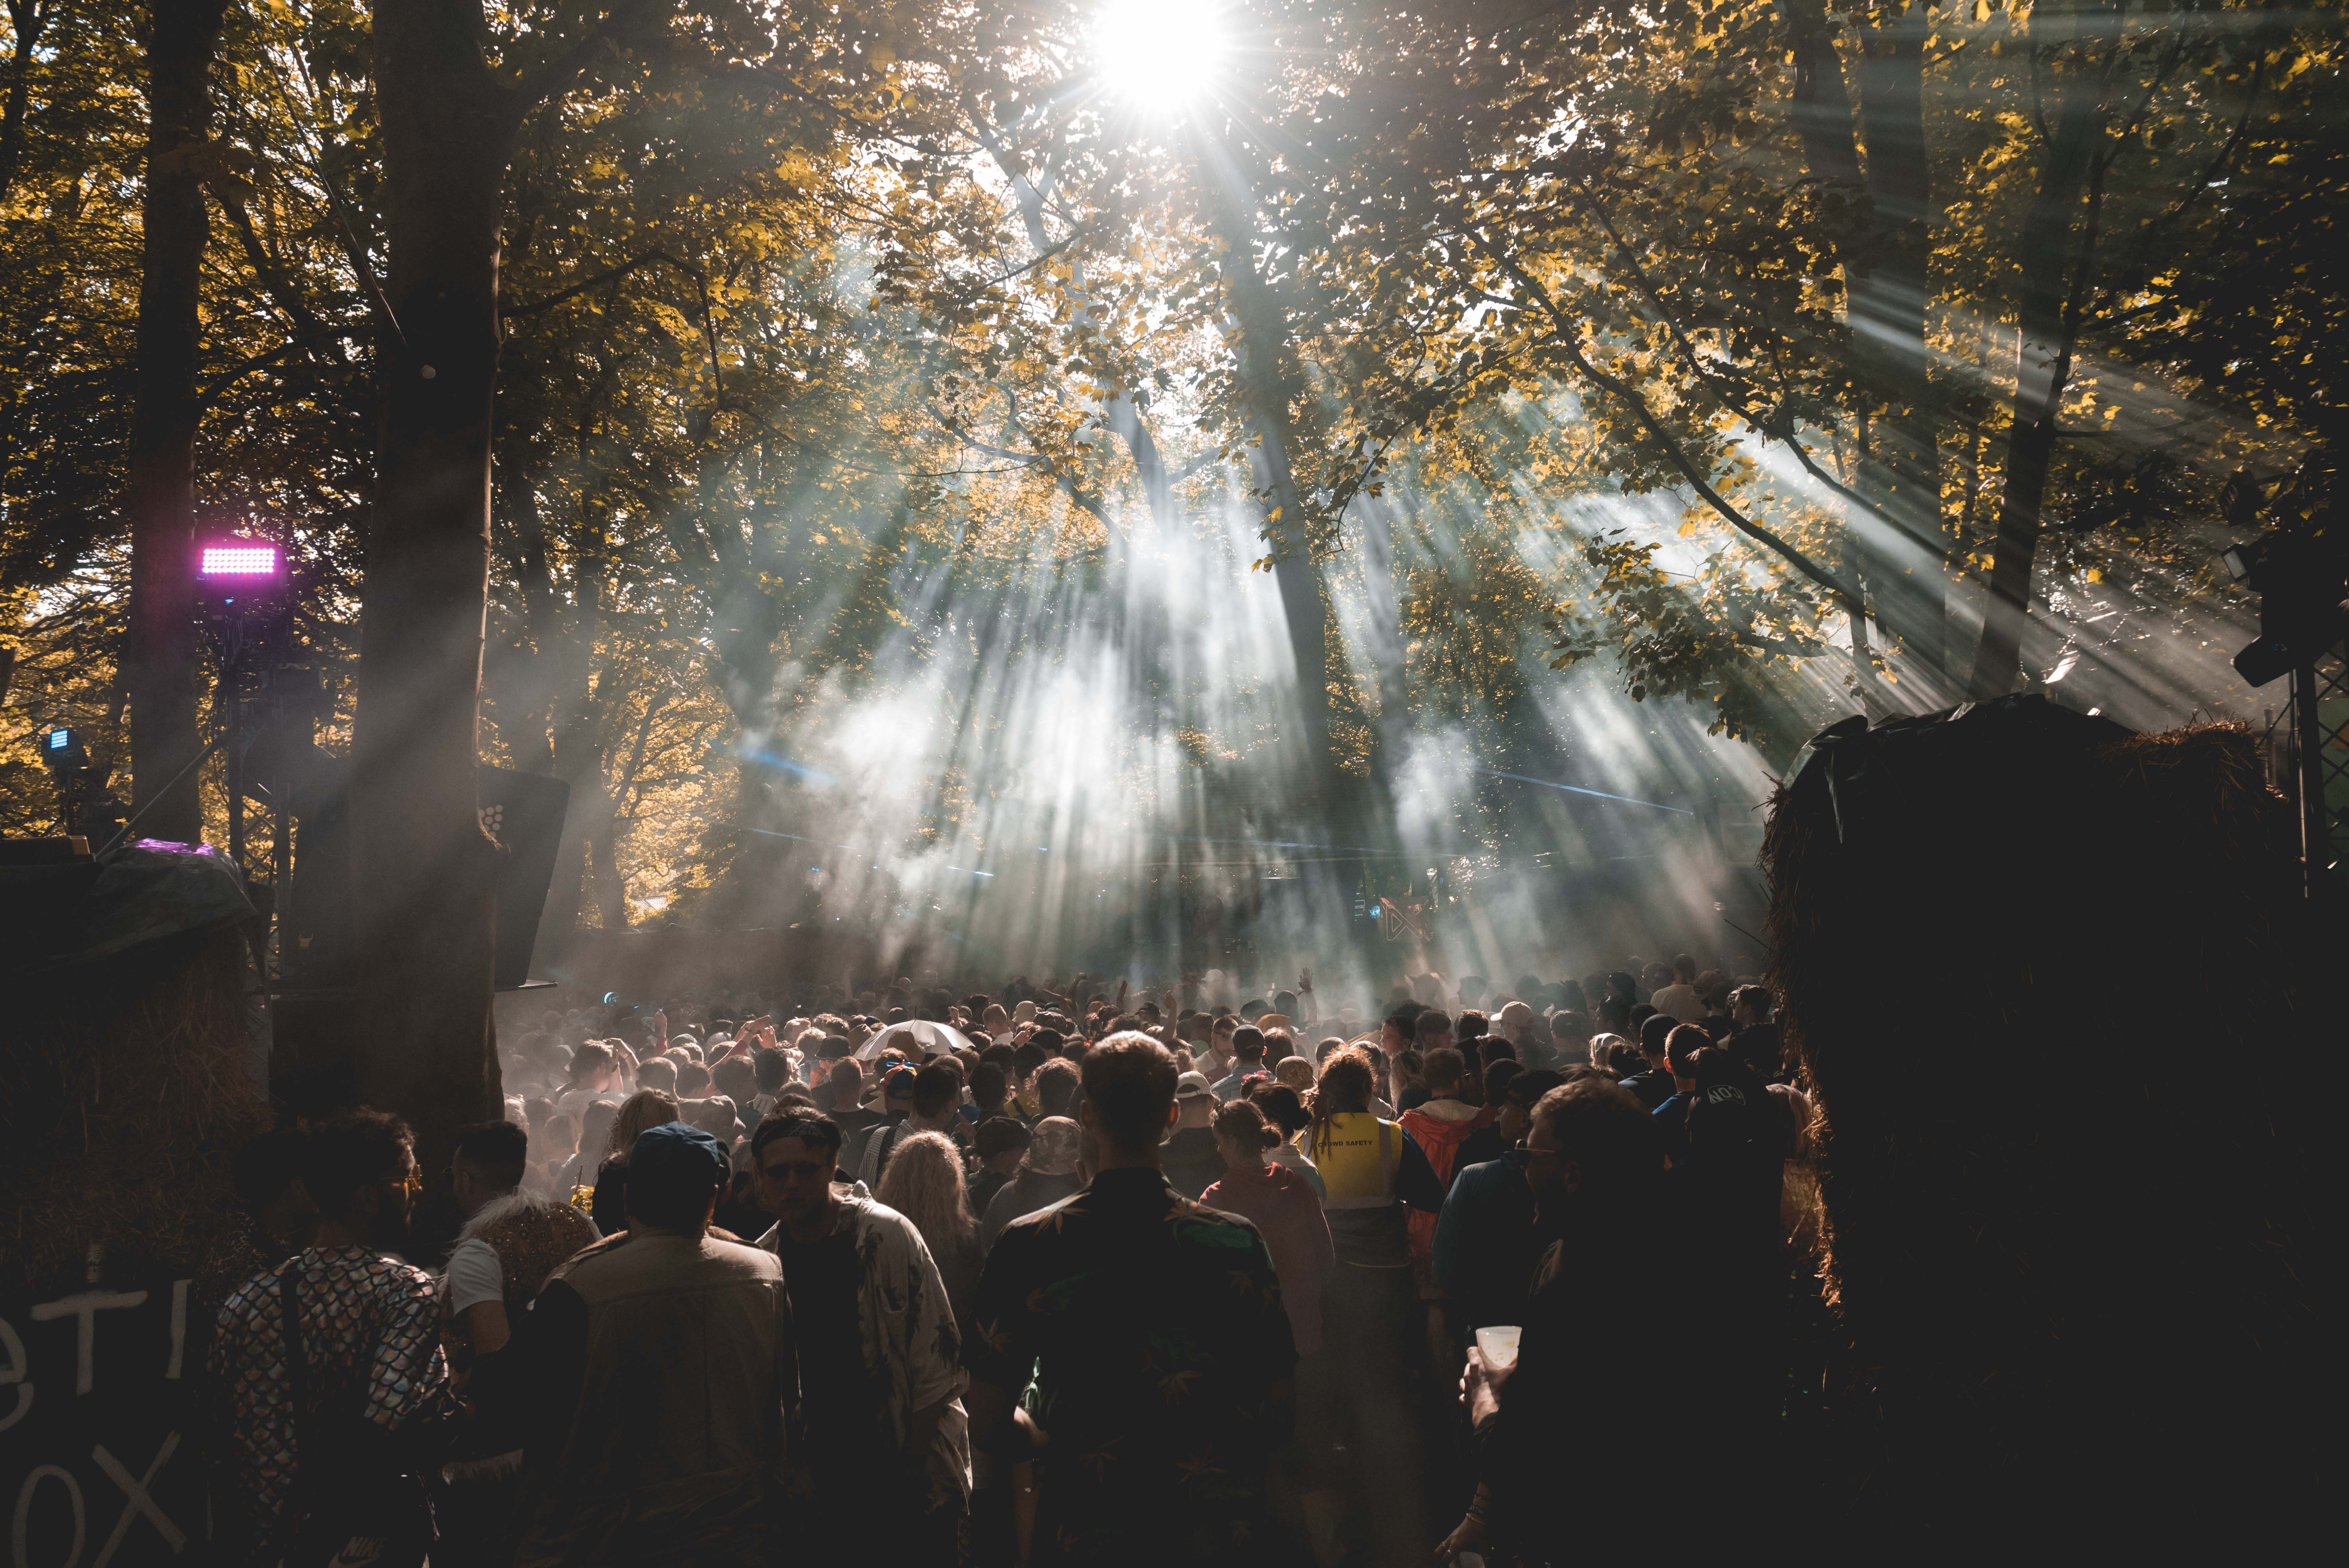 sunlight through the trees at Seth troxler gottwood